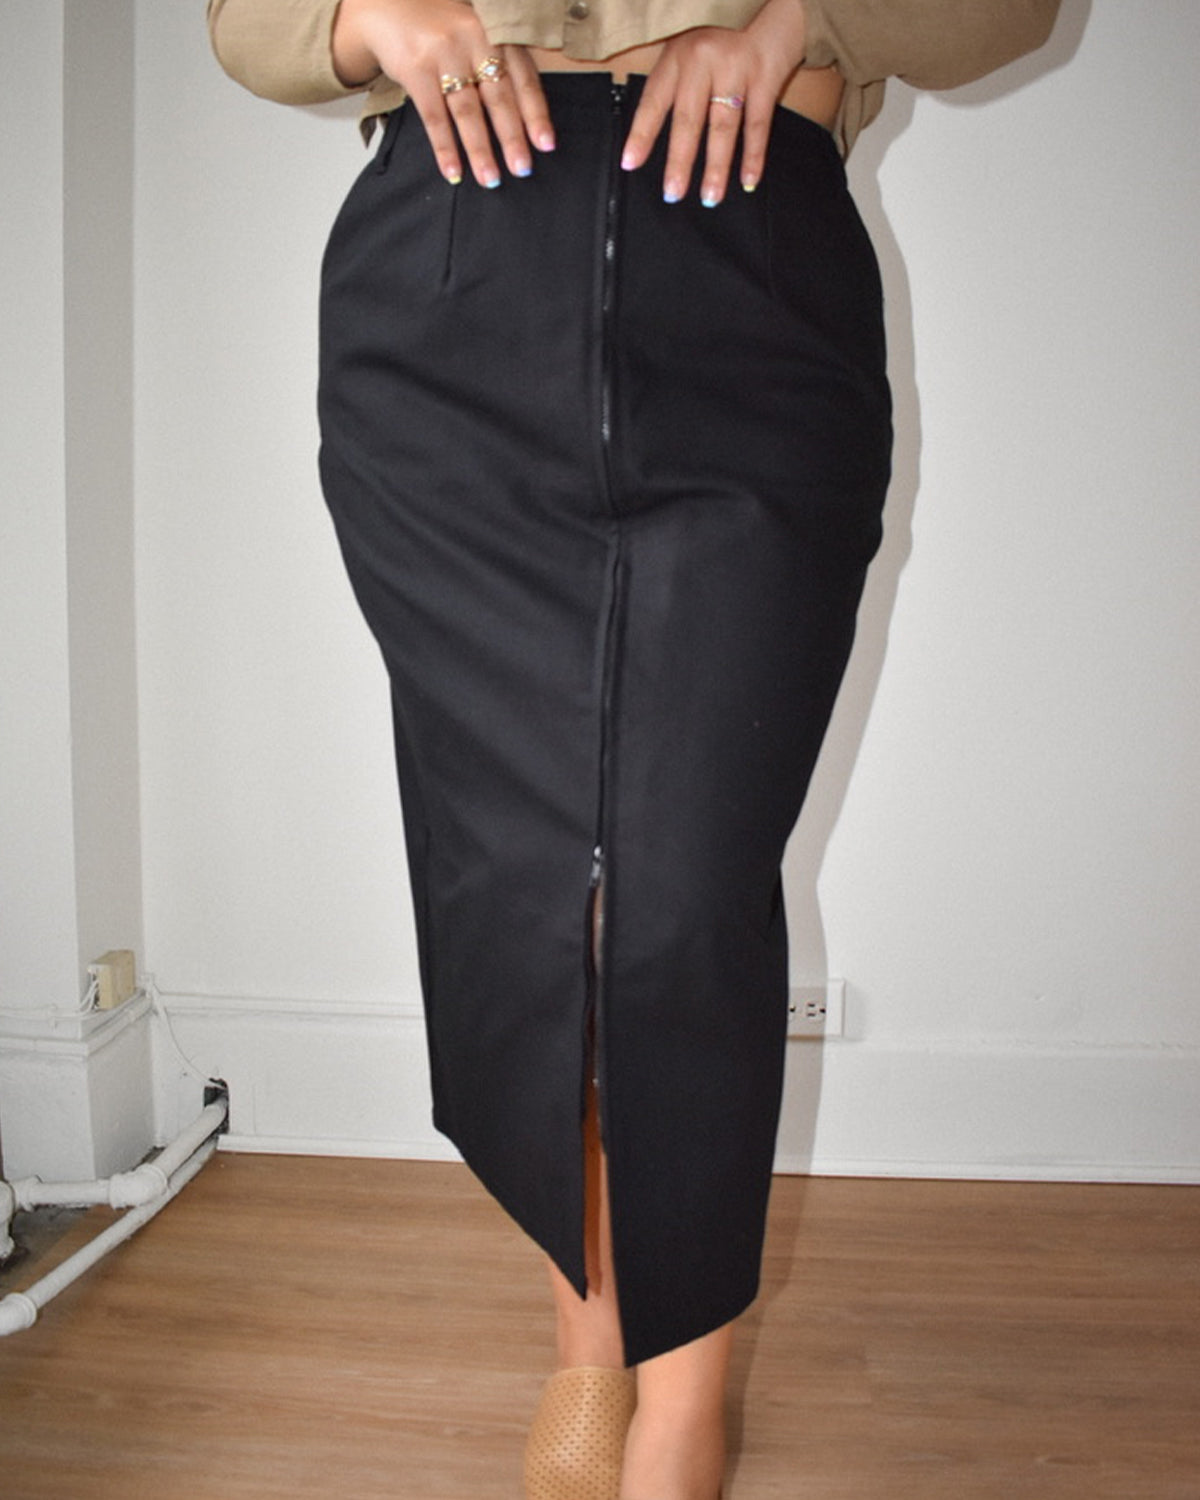 Zipper Skirt - Black